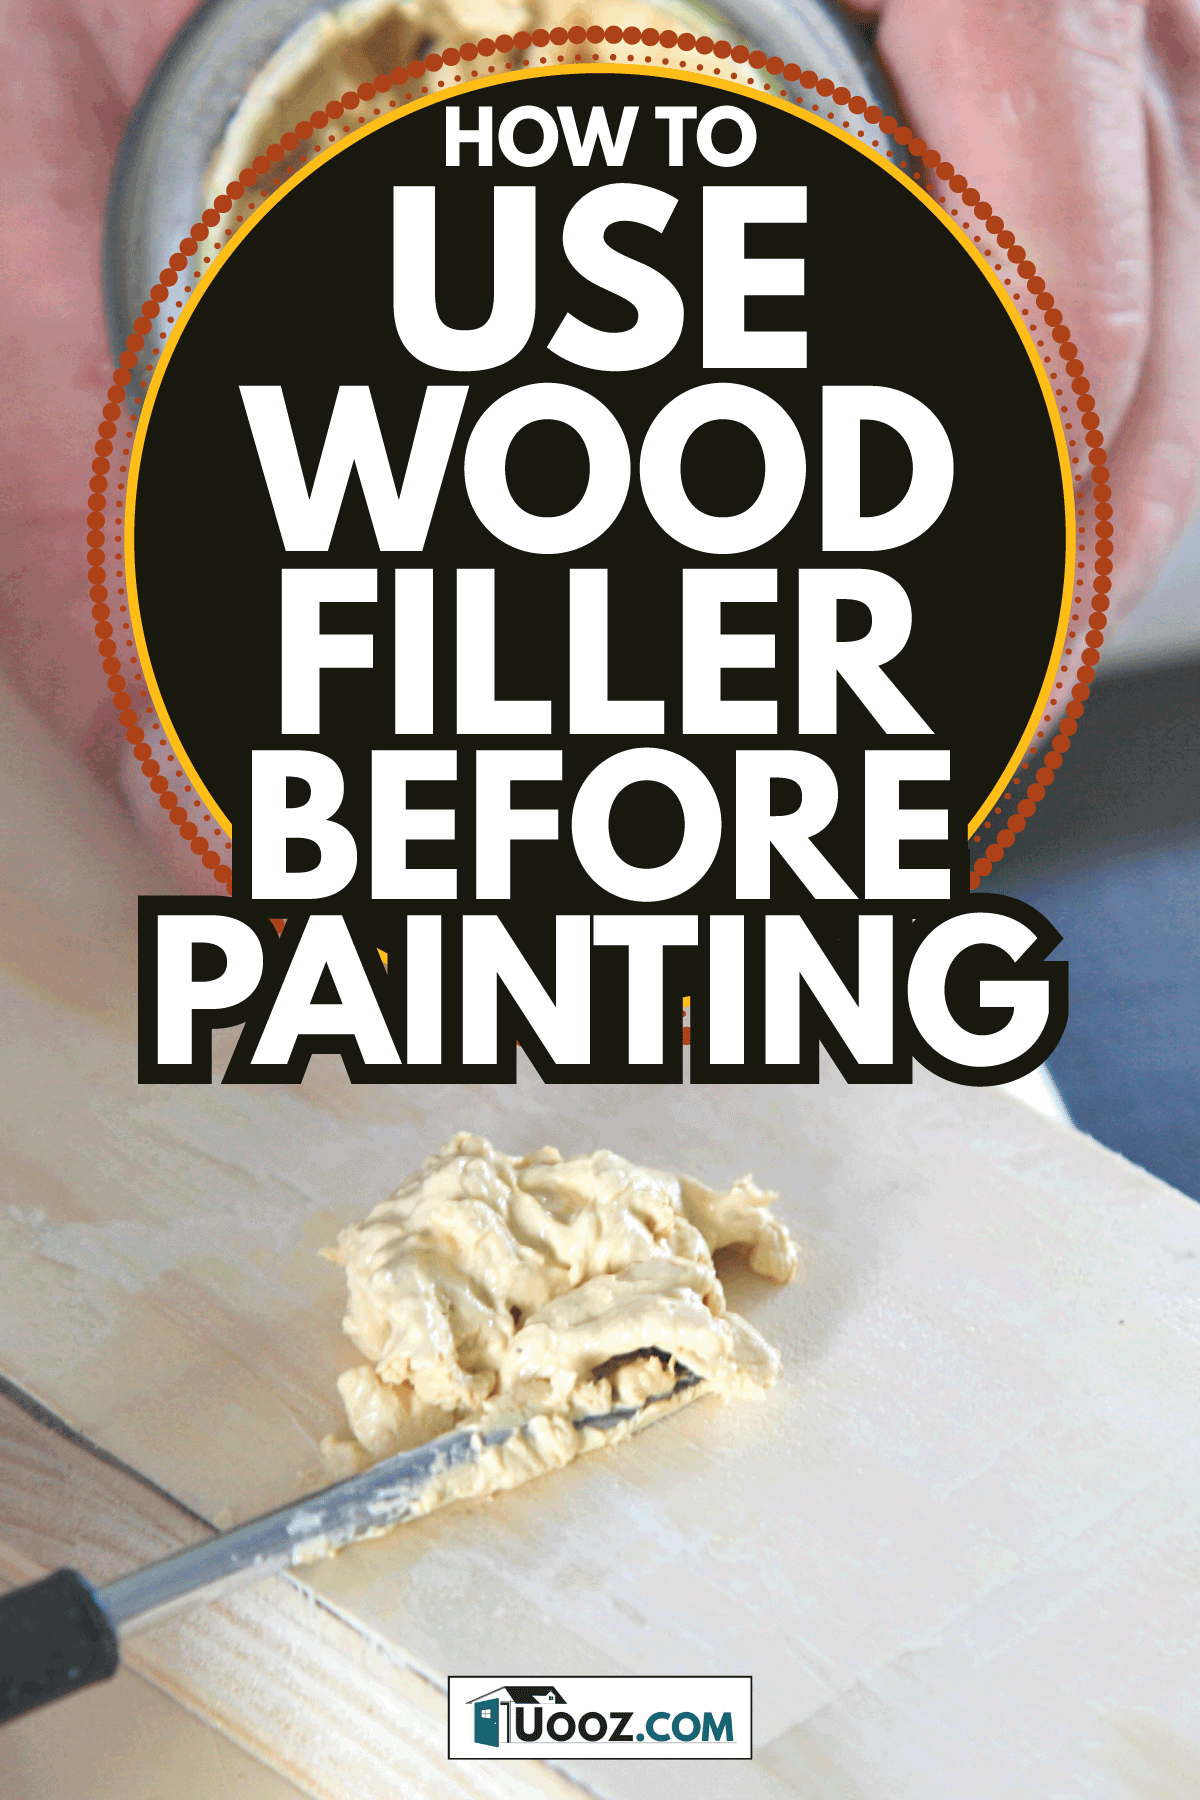 putty can in mans hand. DIY worker applying filler to the wood. Removing holes from a wood surface. How To Use Wood Filler Before Painting